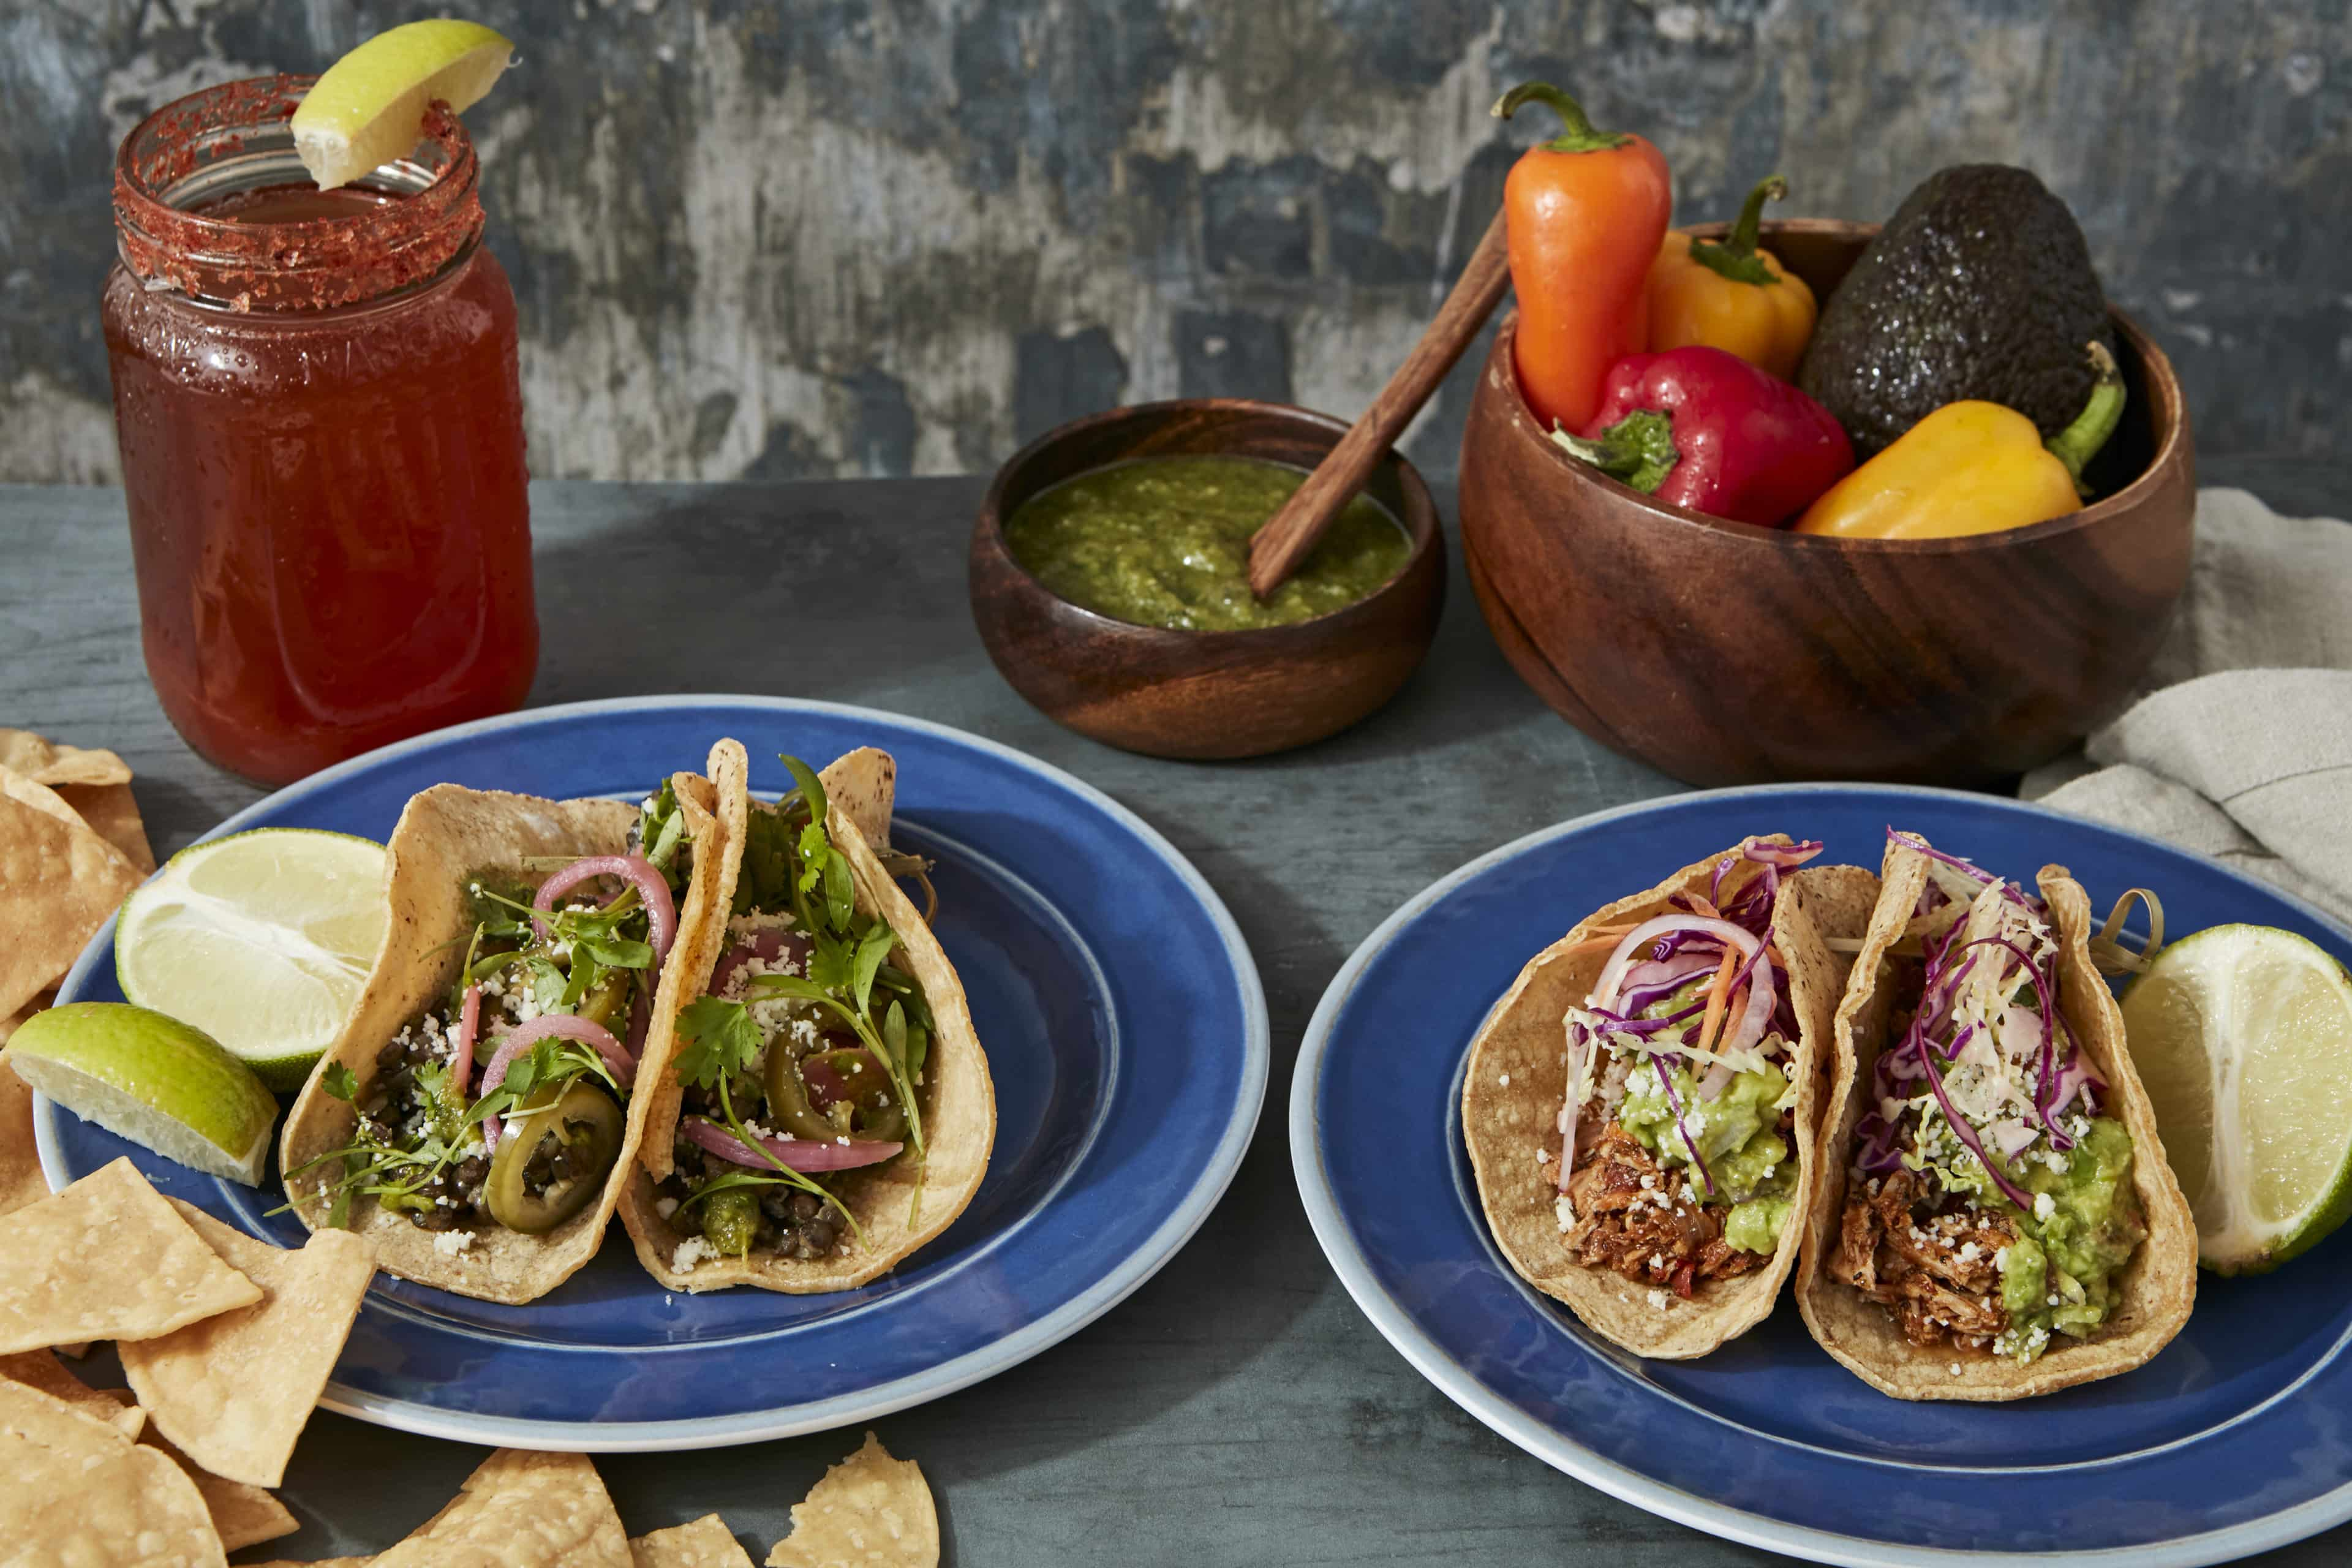 Plated tacos, salsa verde and chips, michelada